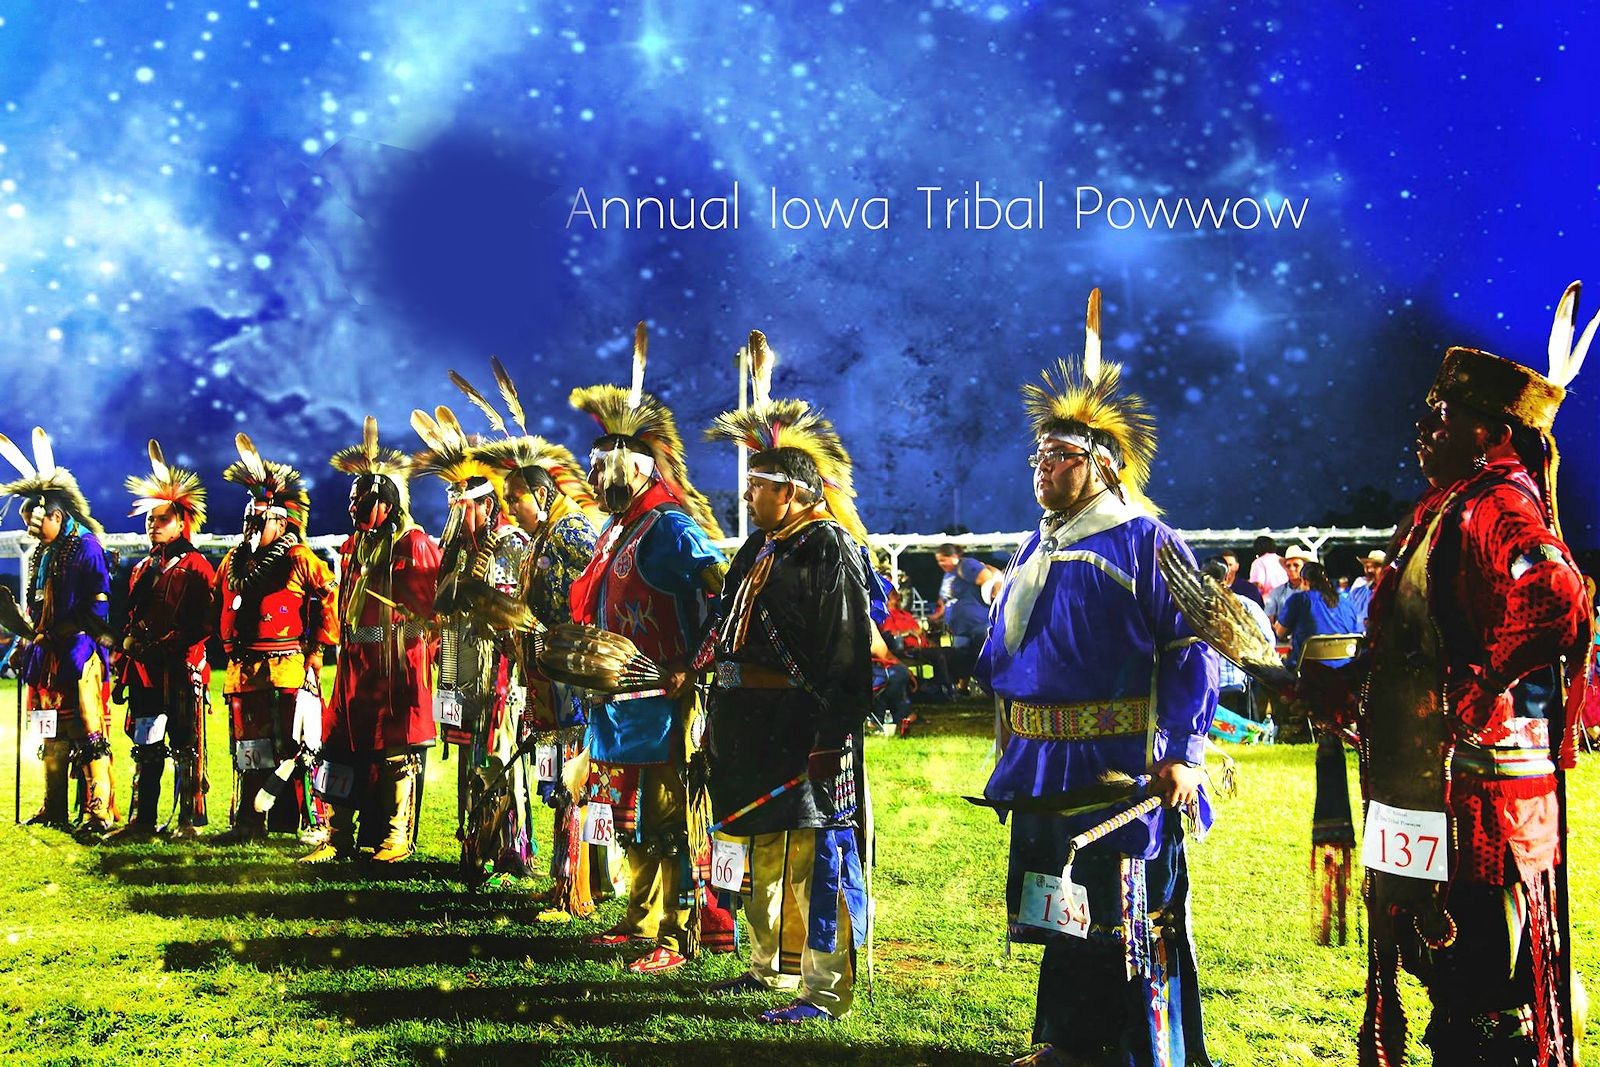 Iowa Tribal Powwow - Bah-Kho-Je Powwow Grounds - Iowa Tribe of Oklahoma